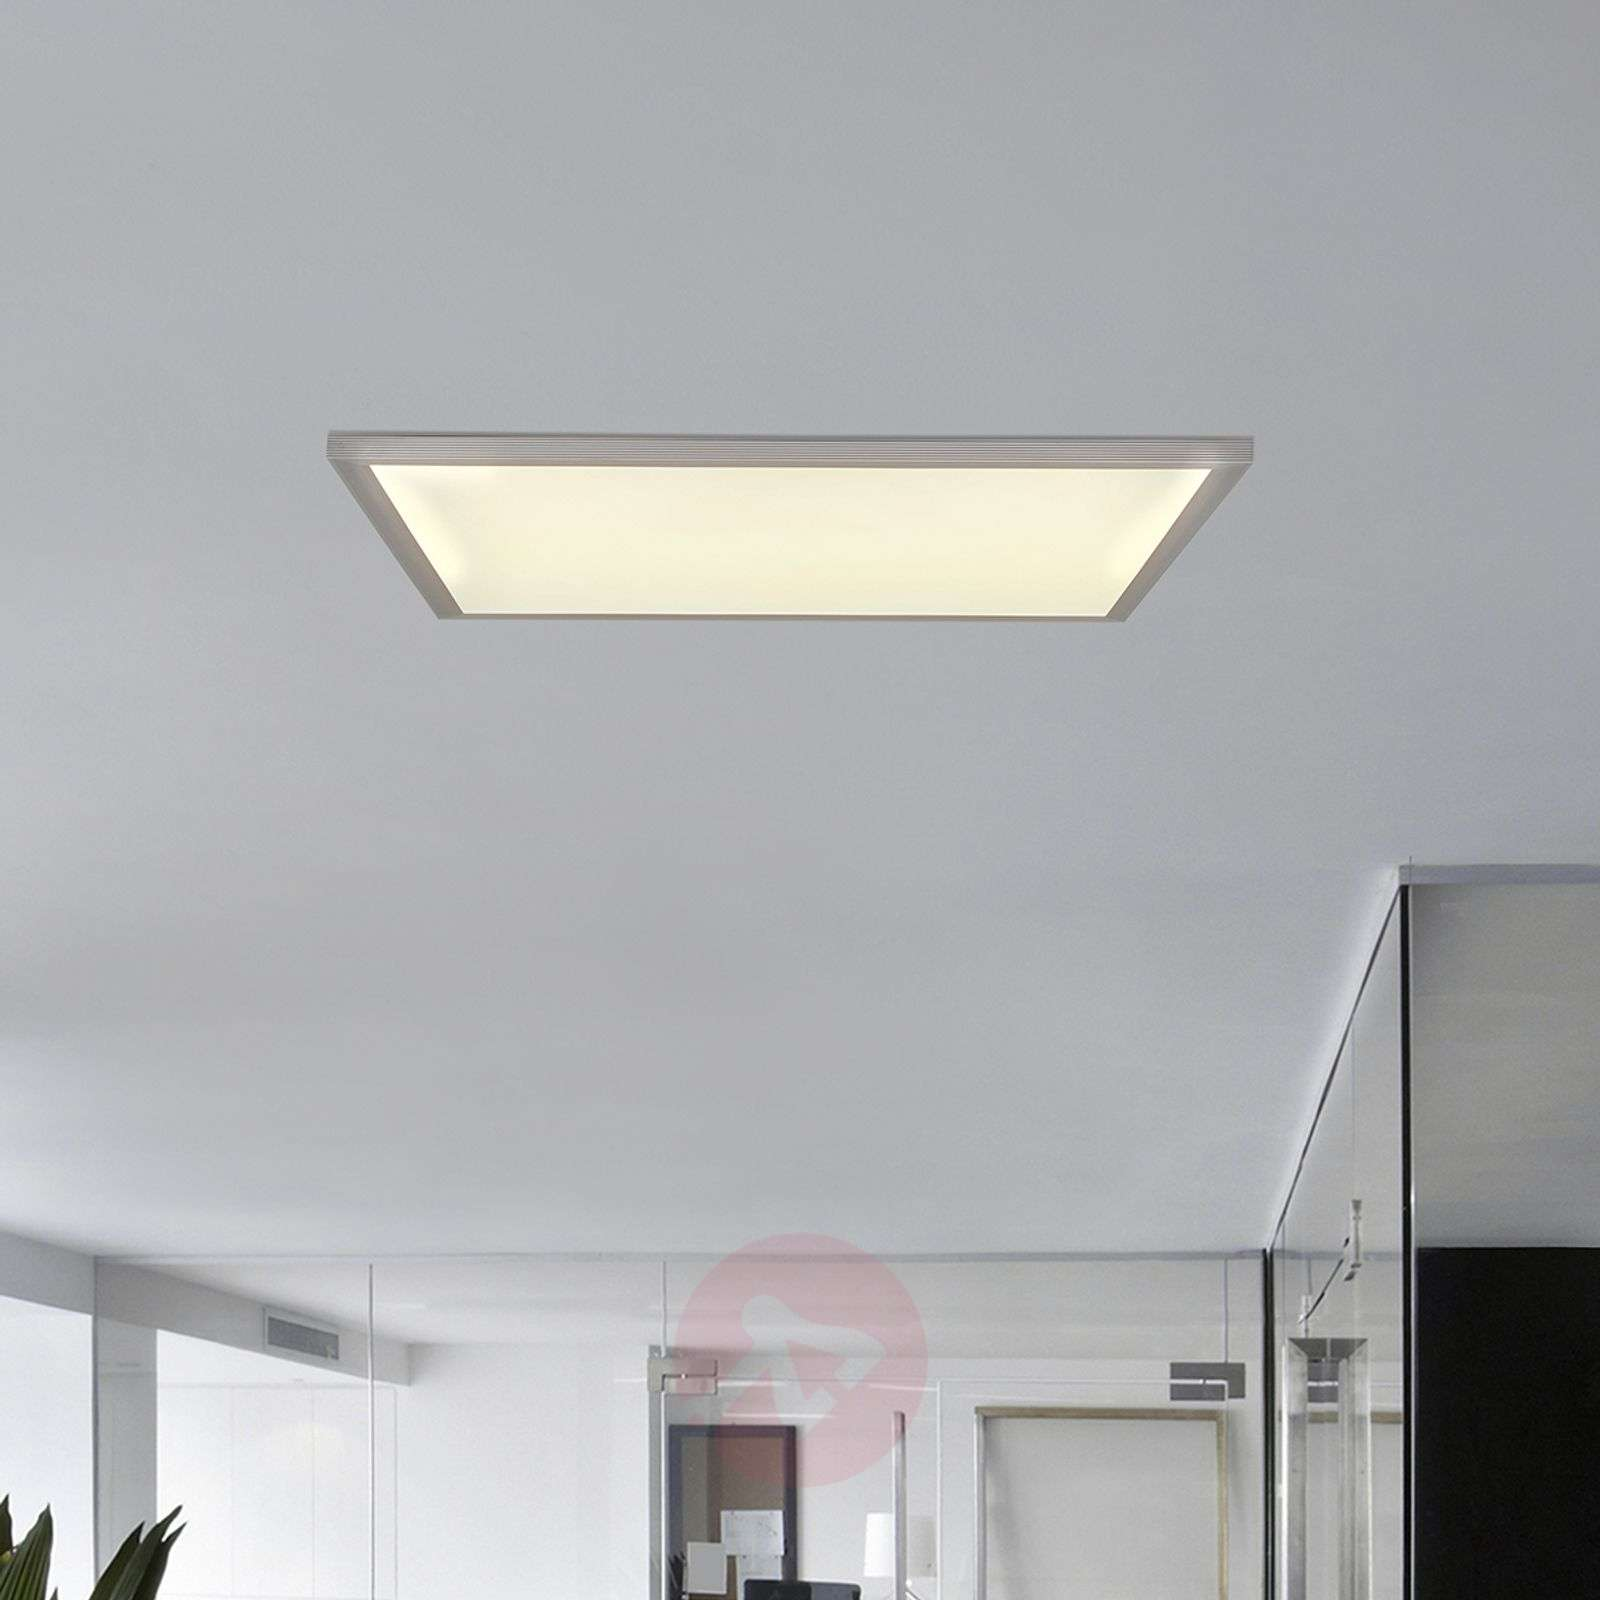 Pannello LED All-in-One dimmerabile 3.800 K-3002144-08